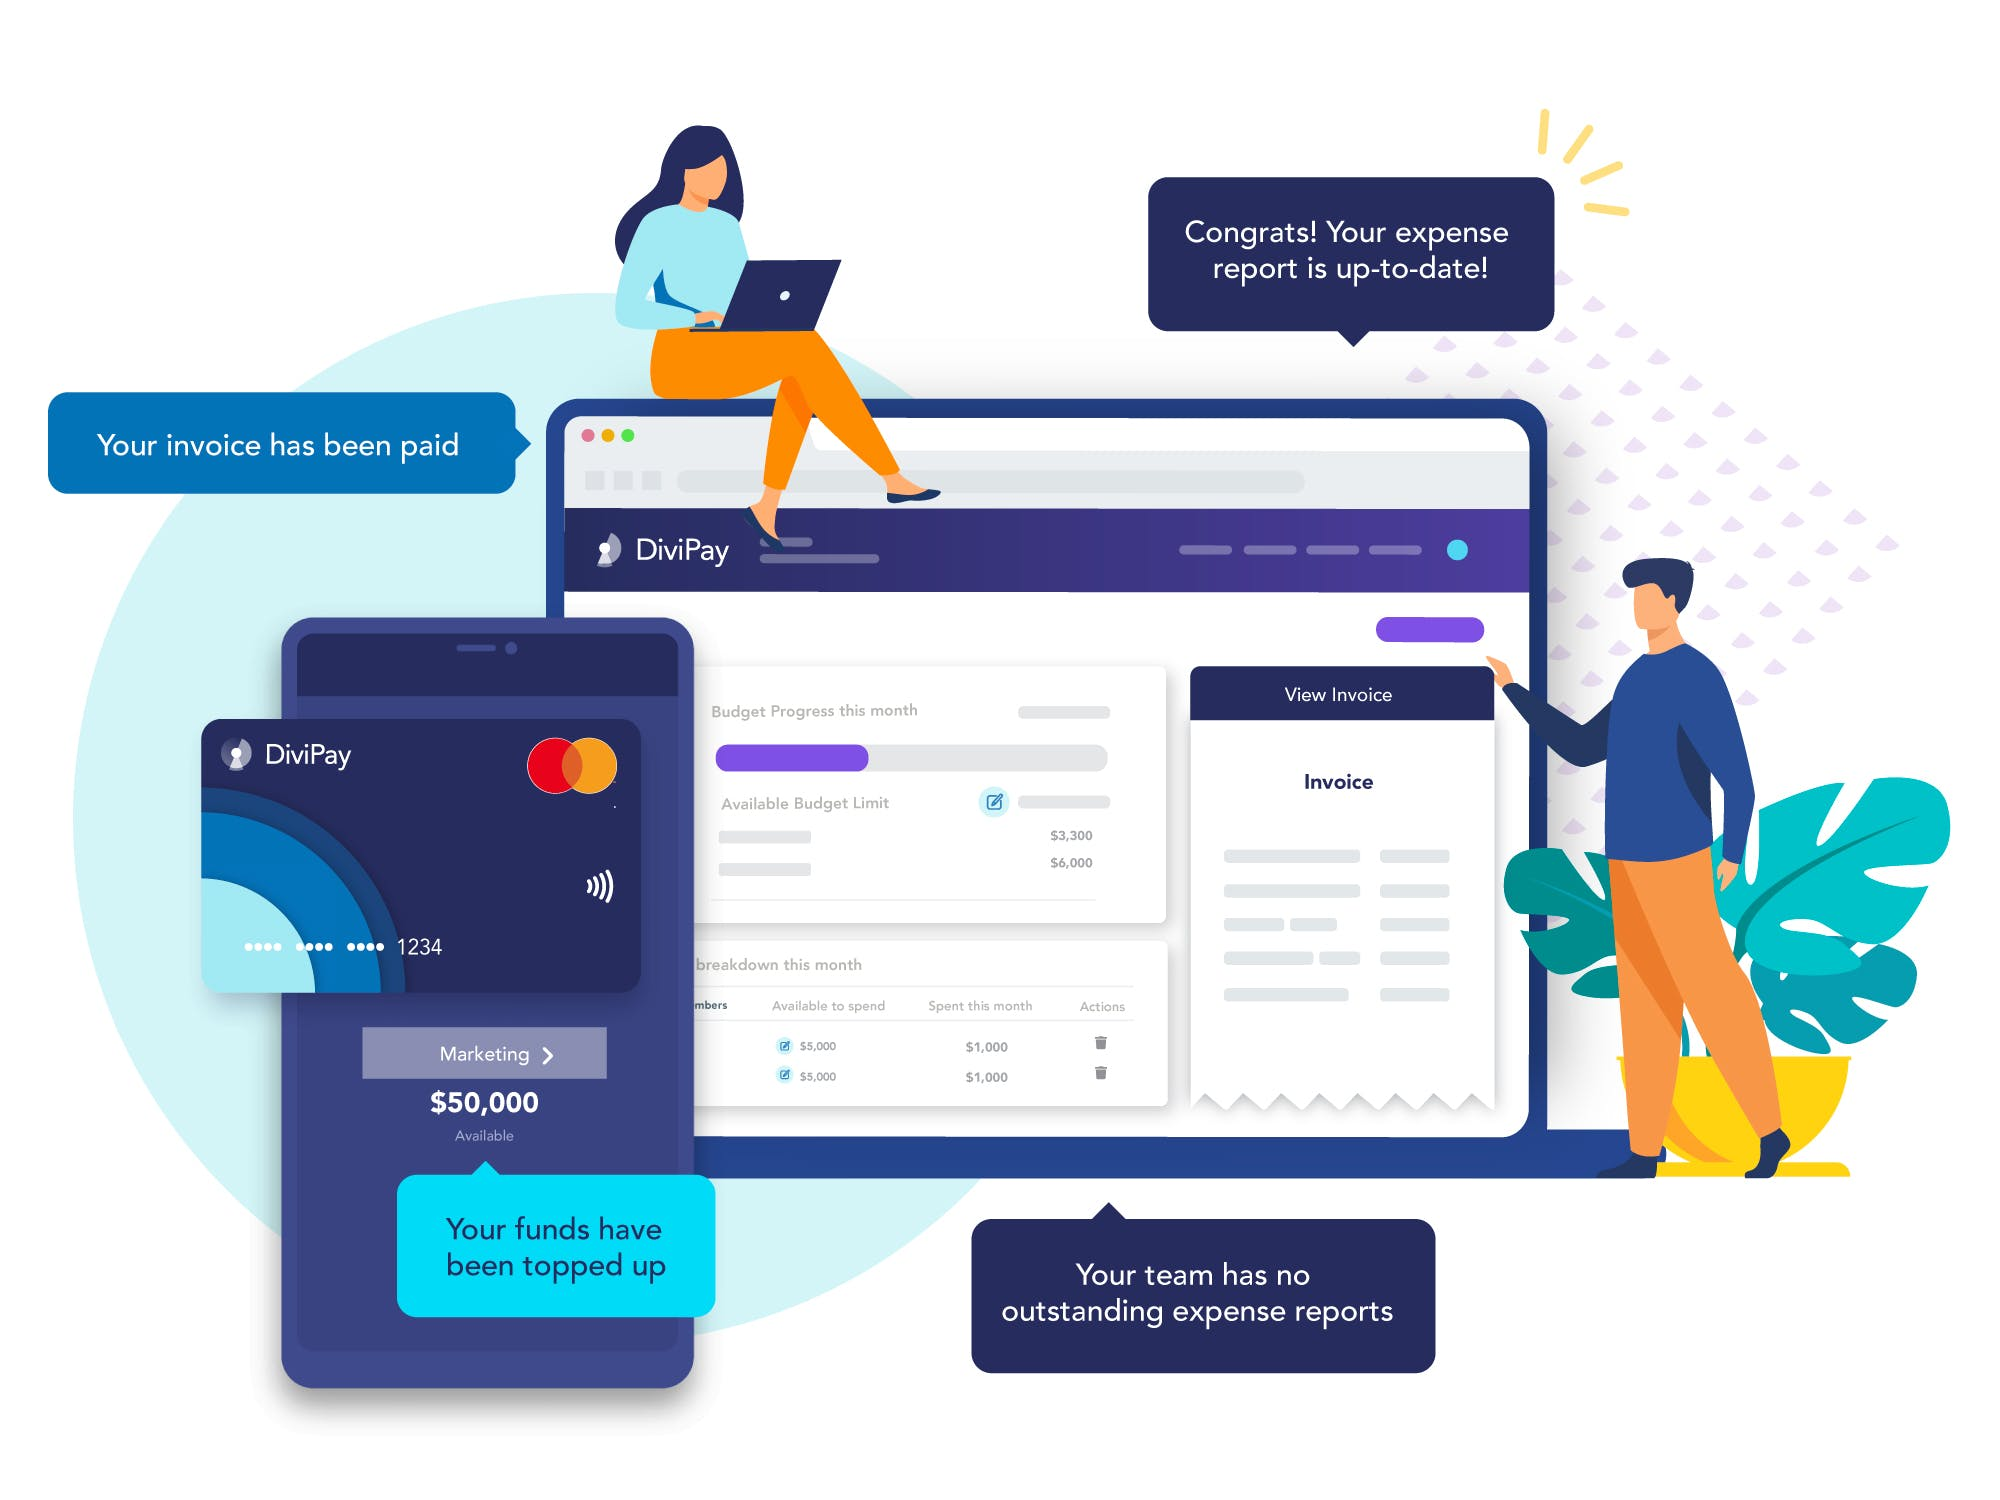 DiviPay - All-in-one spend management solution for small businesses.